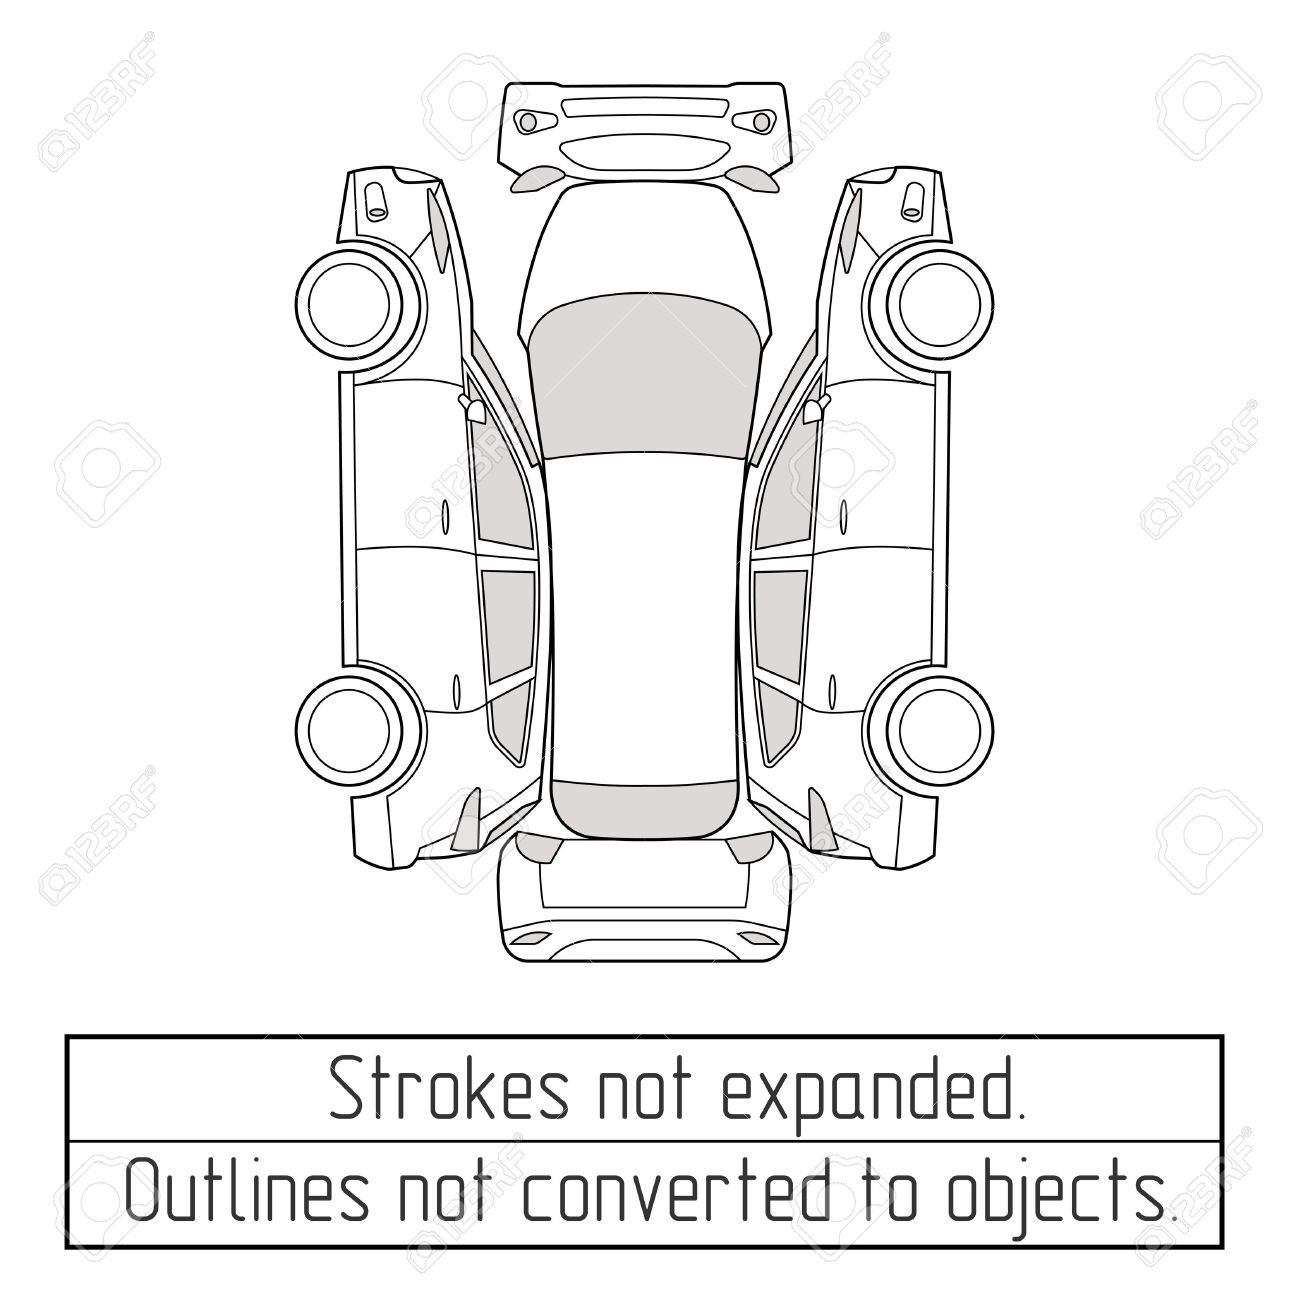 Car Suv Nspectoin Form Drawing Outline Strokes Not Expanded